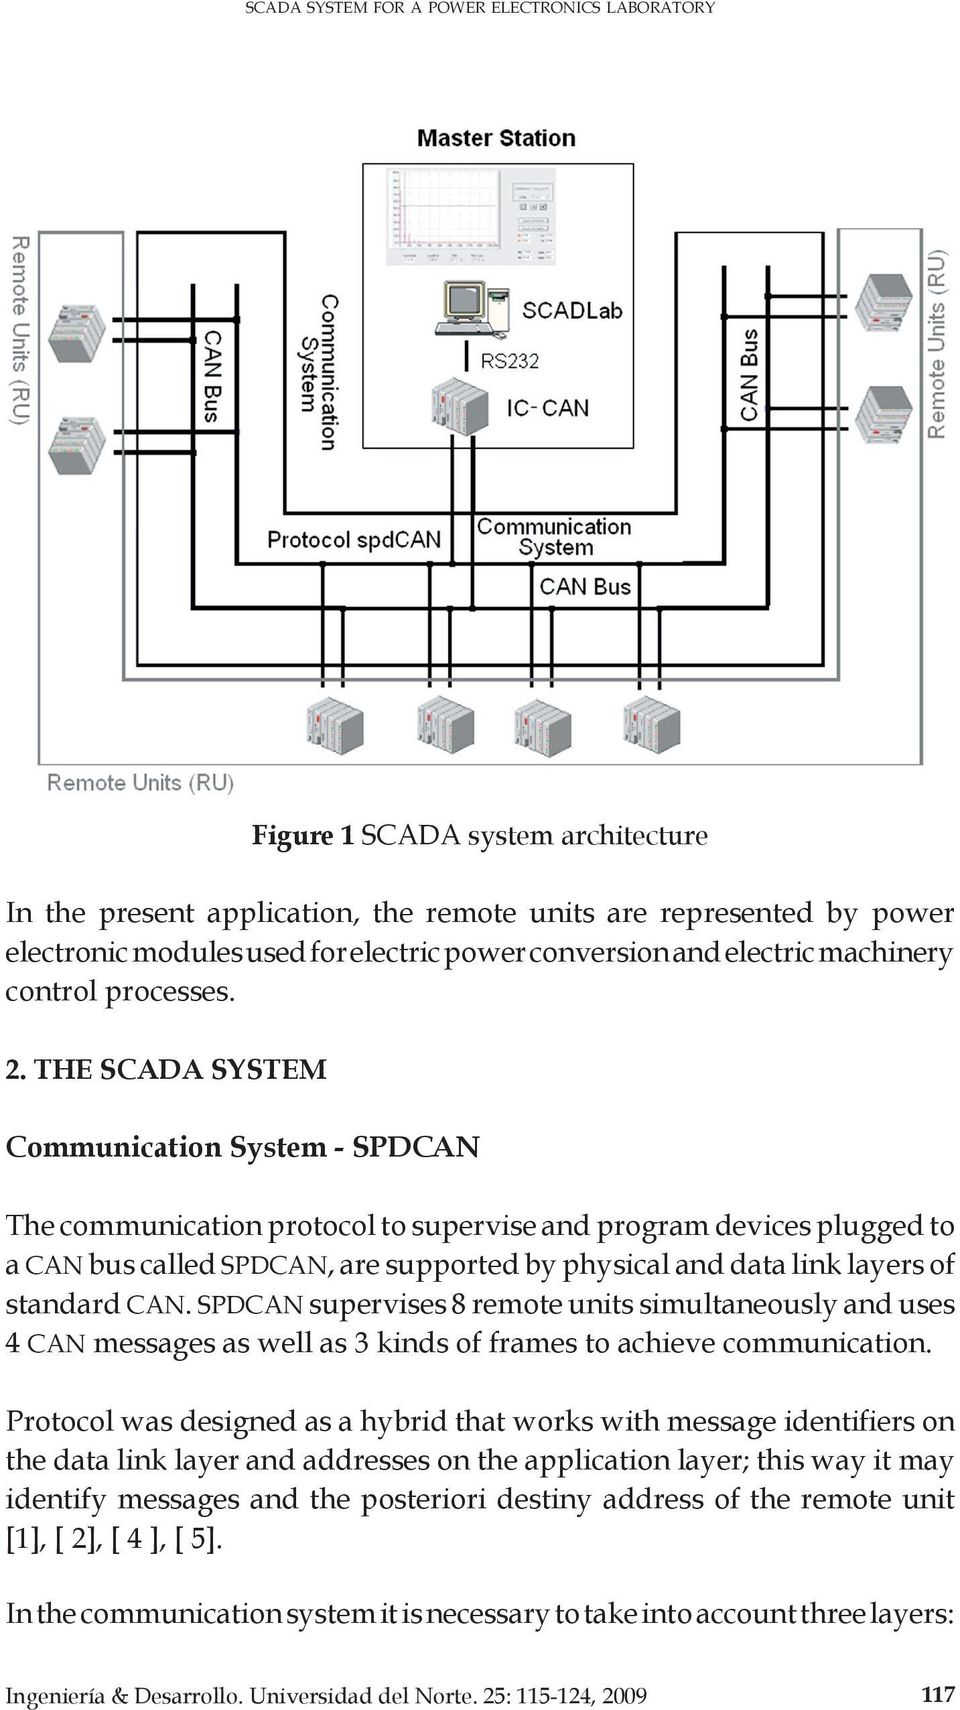 the SCADA SYSTEM Communication System - spdcan The communication protocol to supervise and program devices plugged to a CAN bus called spdcan, are supported by physical and data link layers of